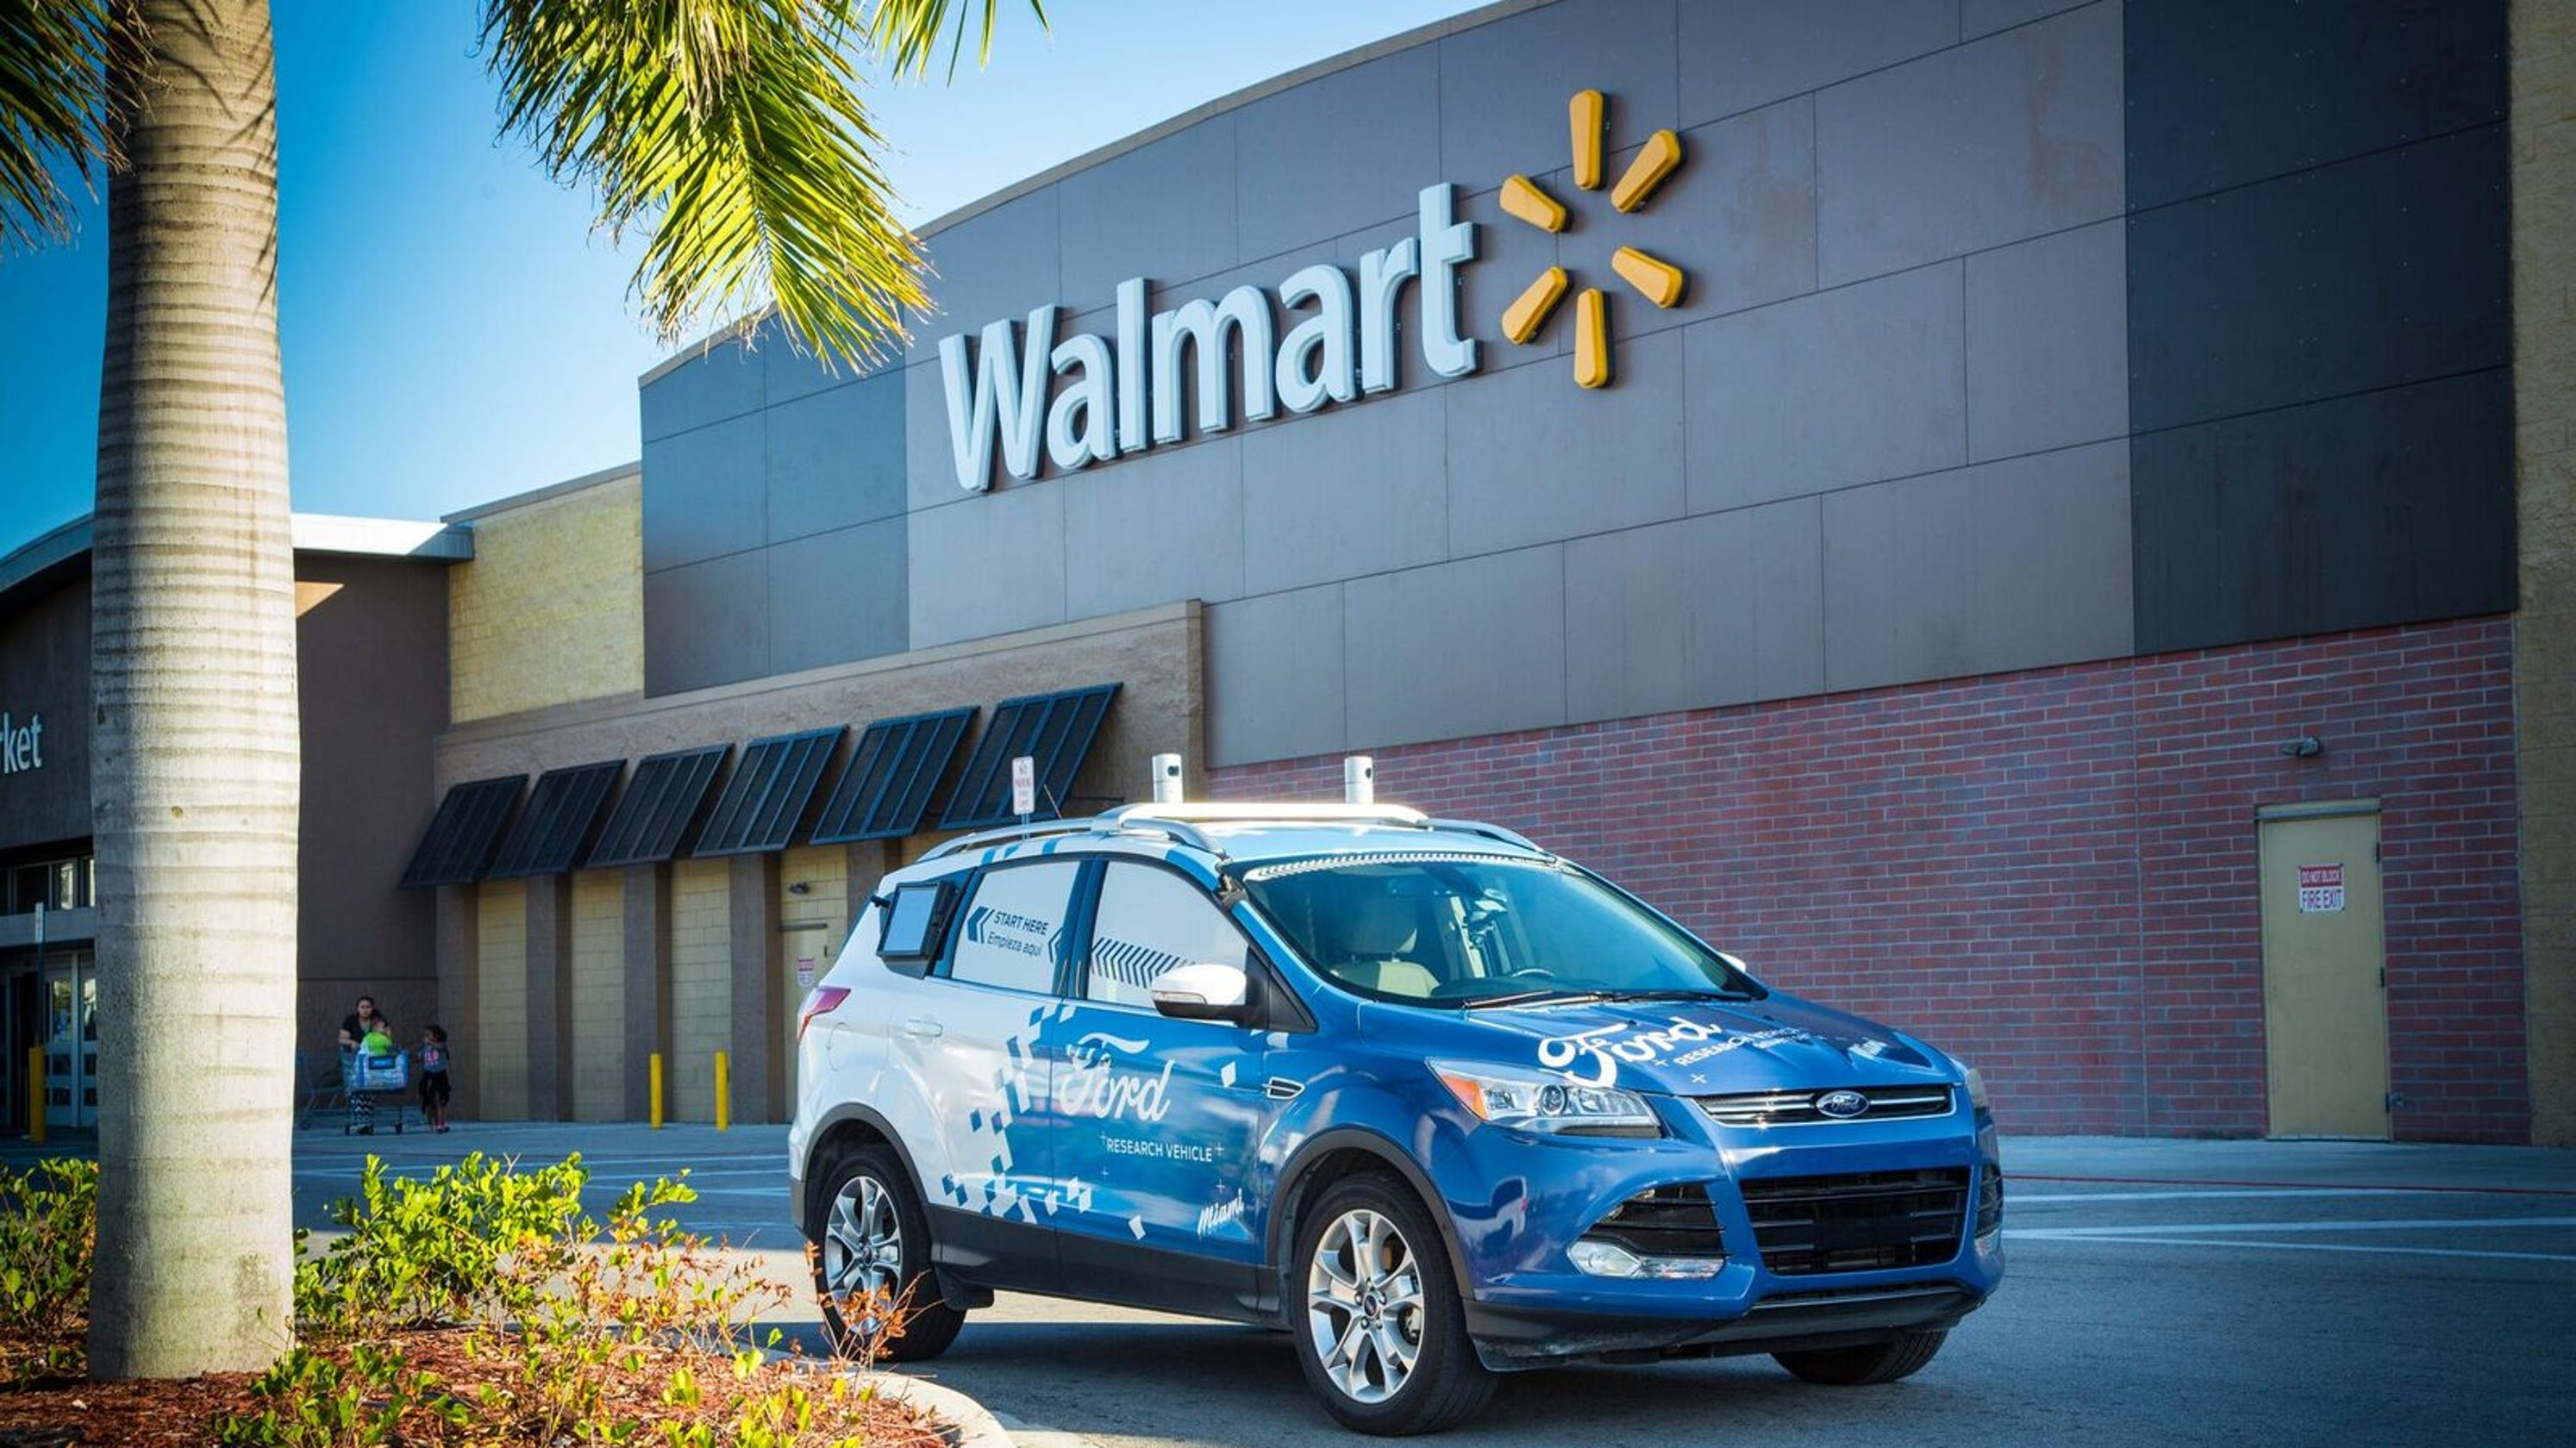 Walmart ford motor to test driverless delivery technology